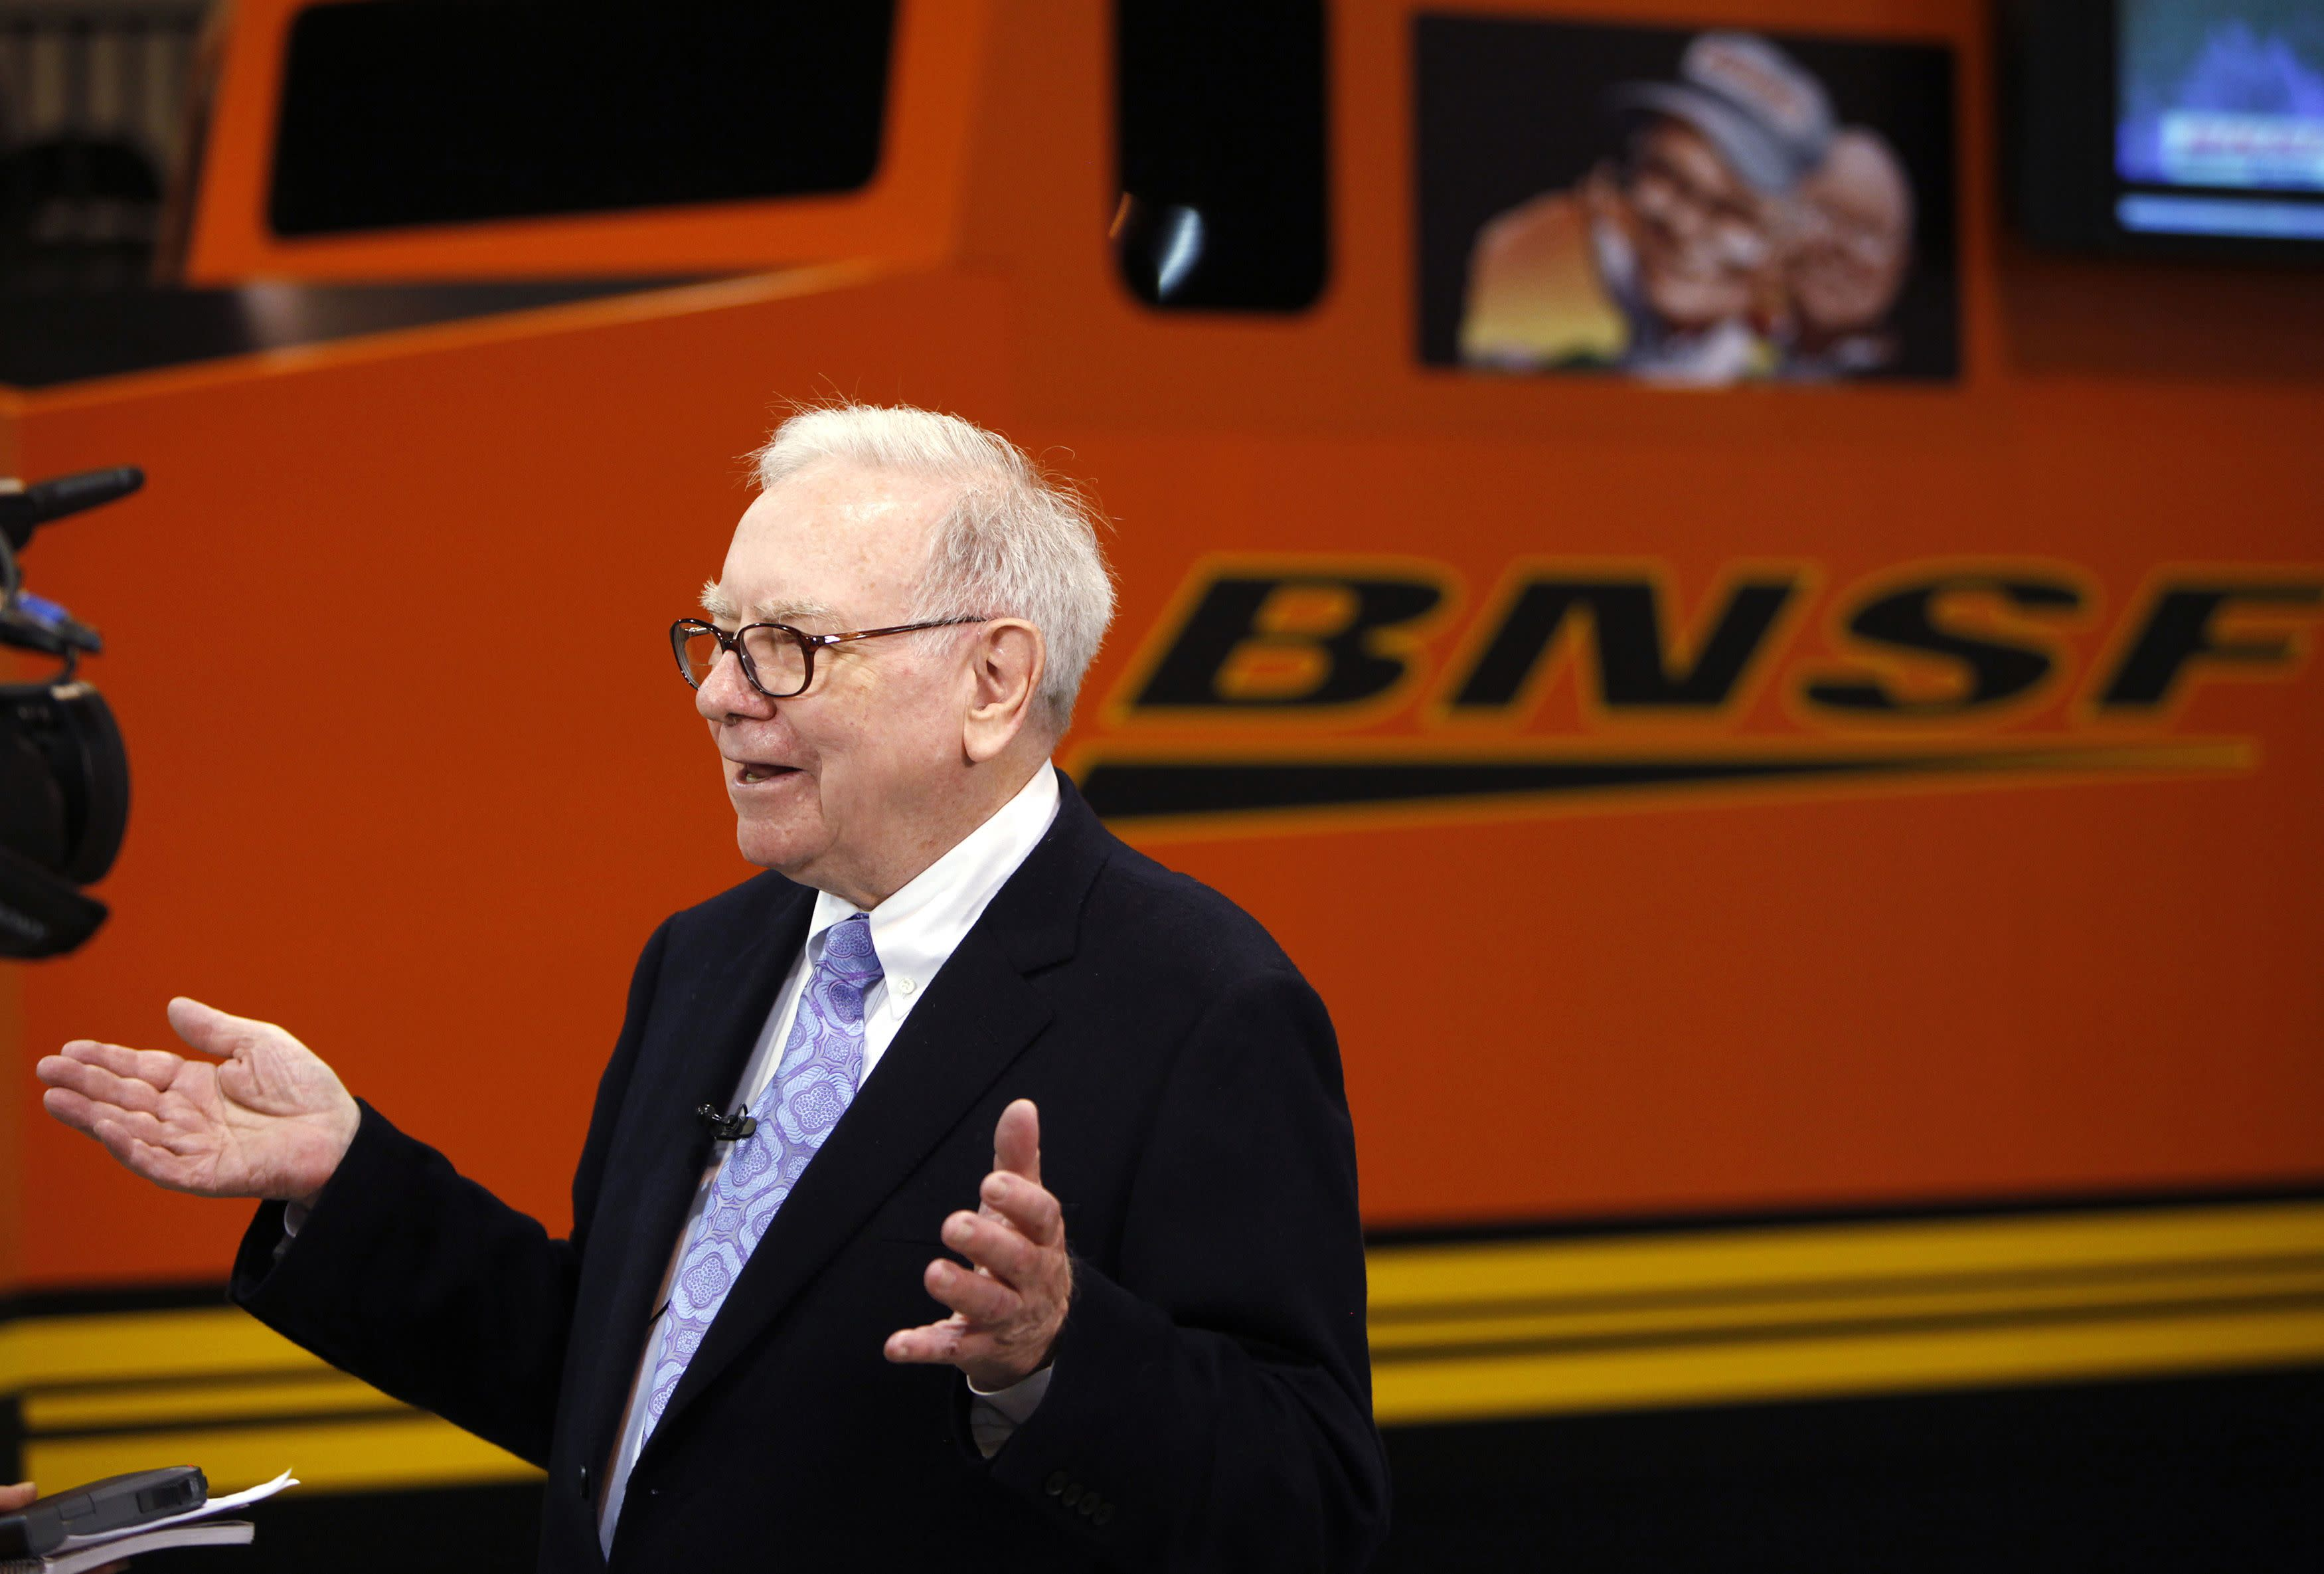 Berkshire Hathaway Chairman Warren Buffett talks in front of a mock BNSF railroad engine. REUTERS/Rick Wilking